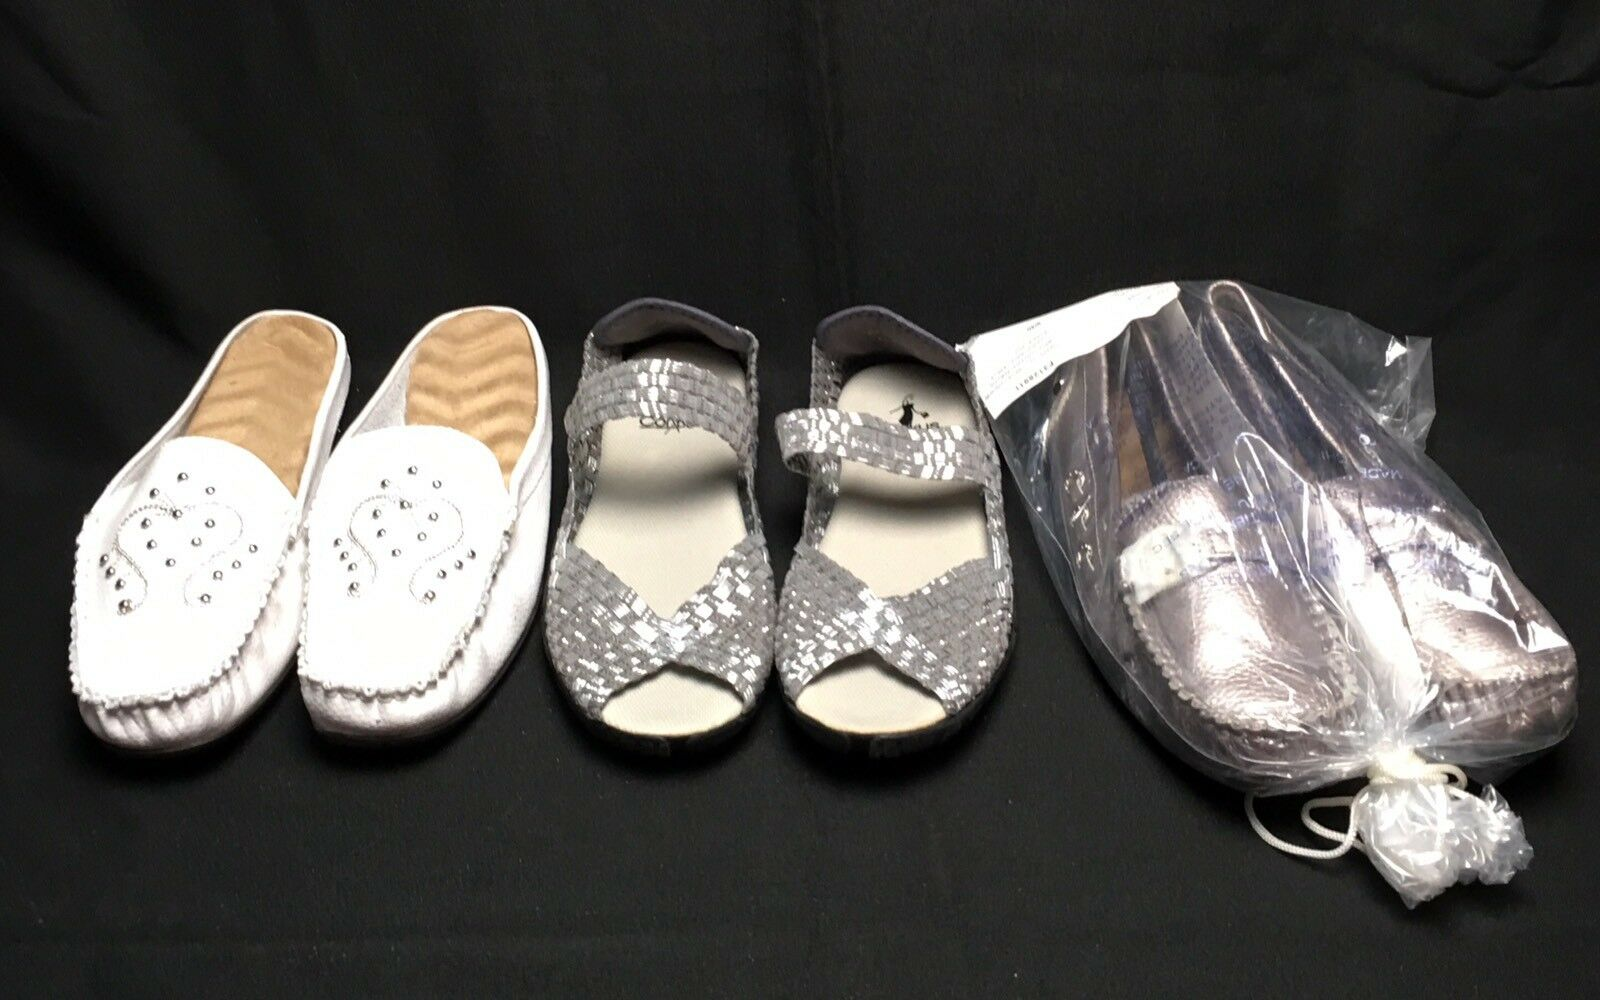 Lot 3 femmes 9 EU40 Includes Corky Sandals Metallic argent Loafers blanc Slip On